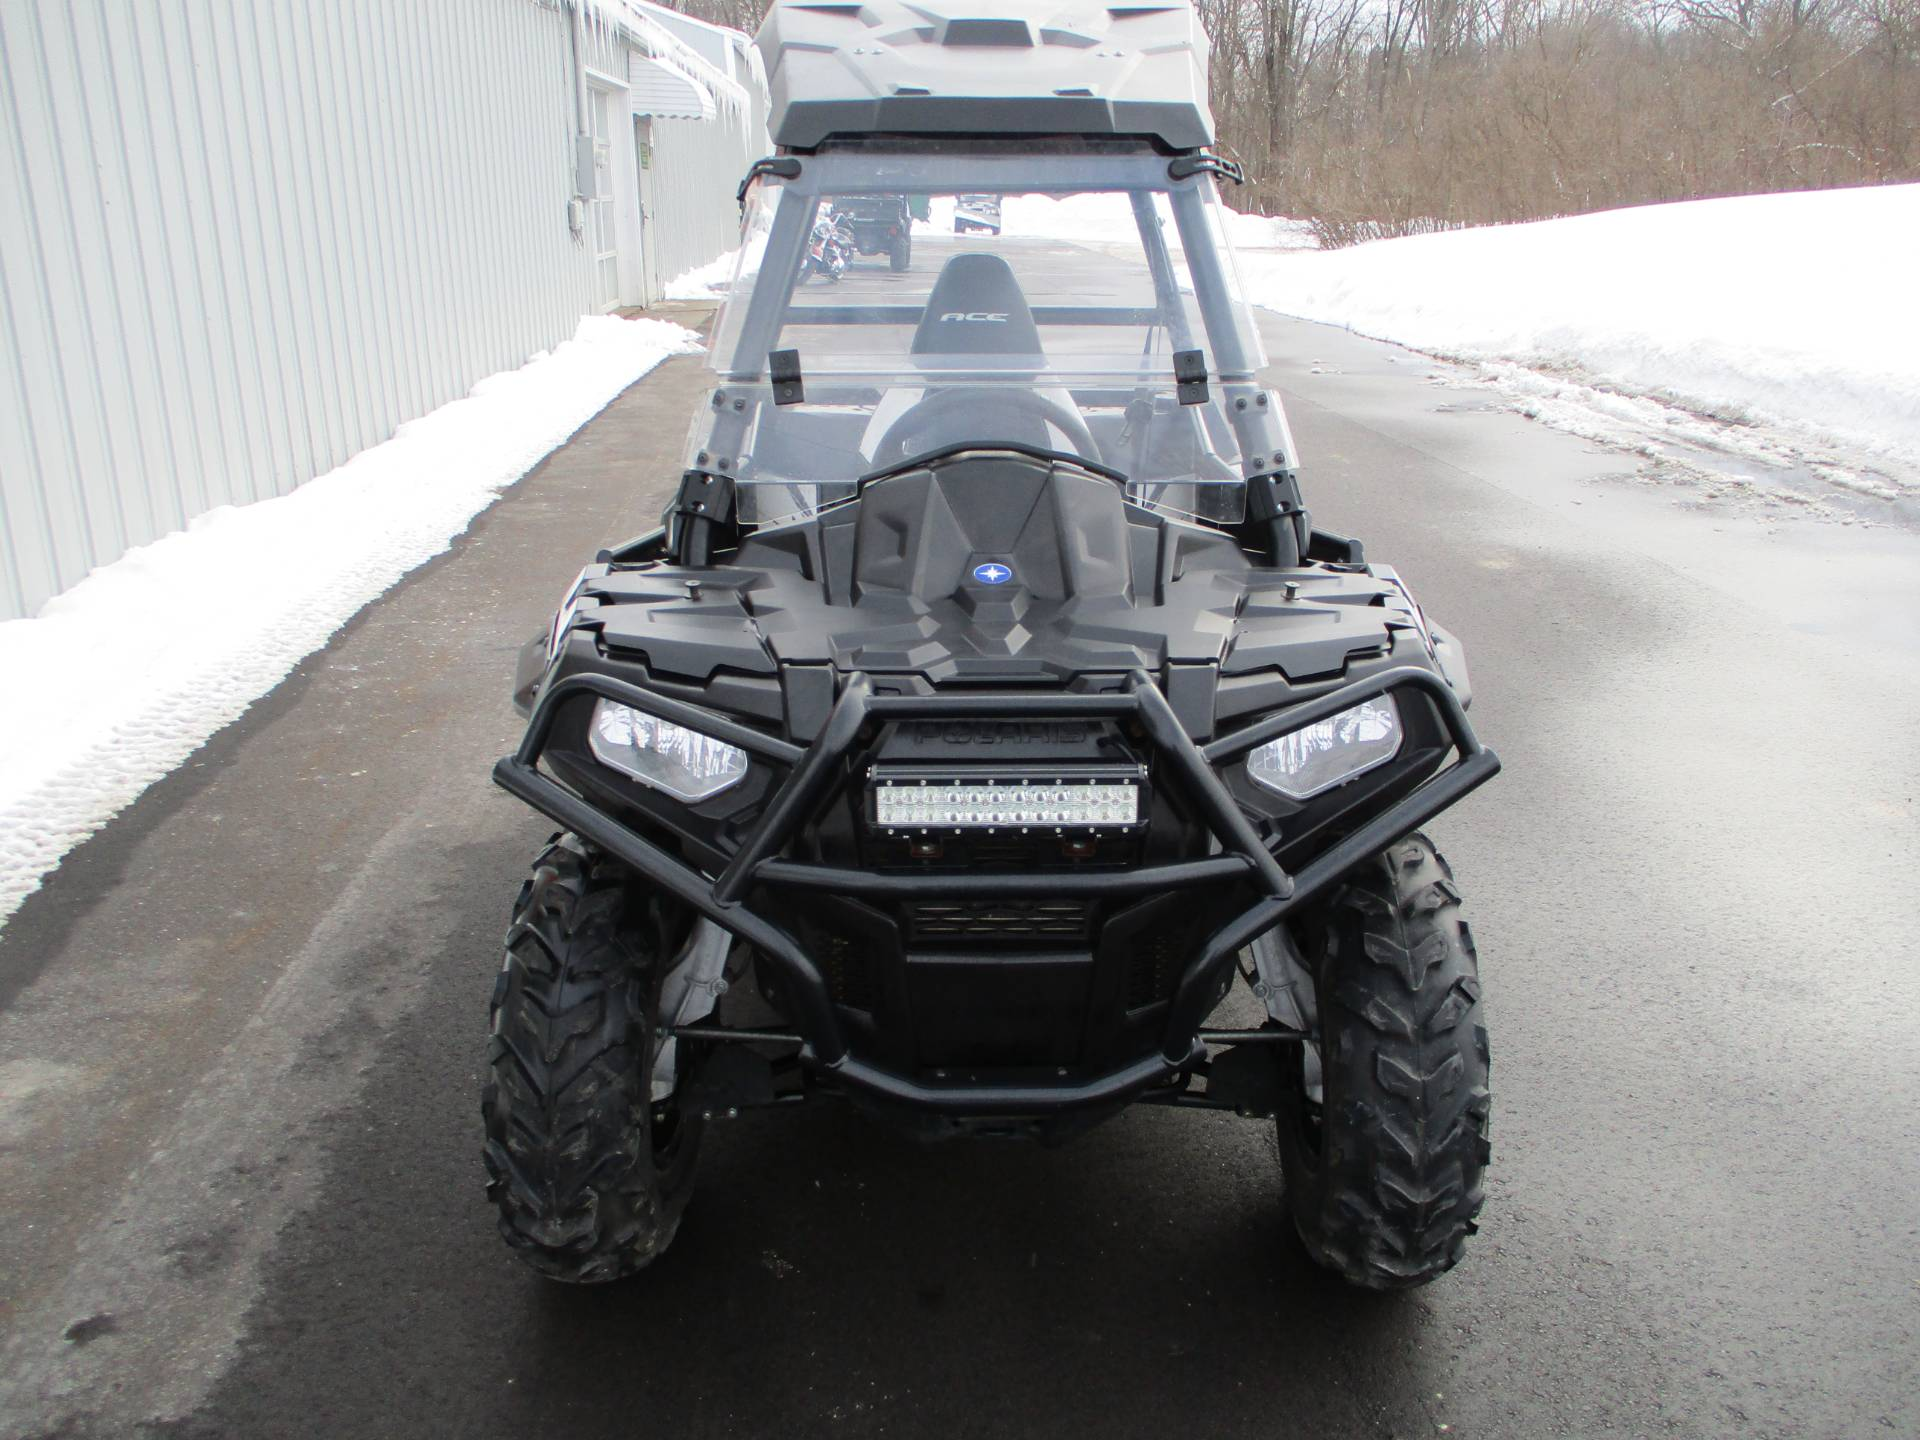 2016 Polaris ACE 900 SP in Howell, Michigan - Photo 15